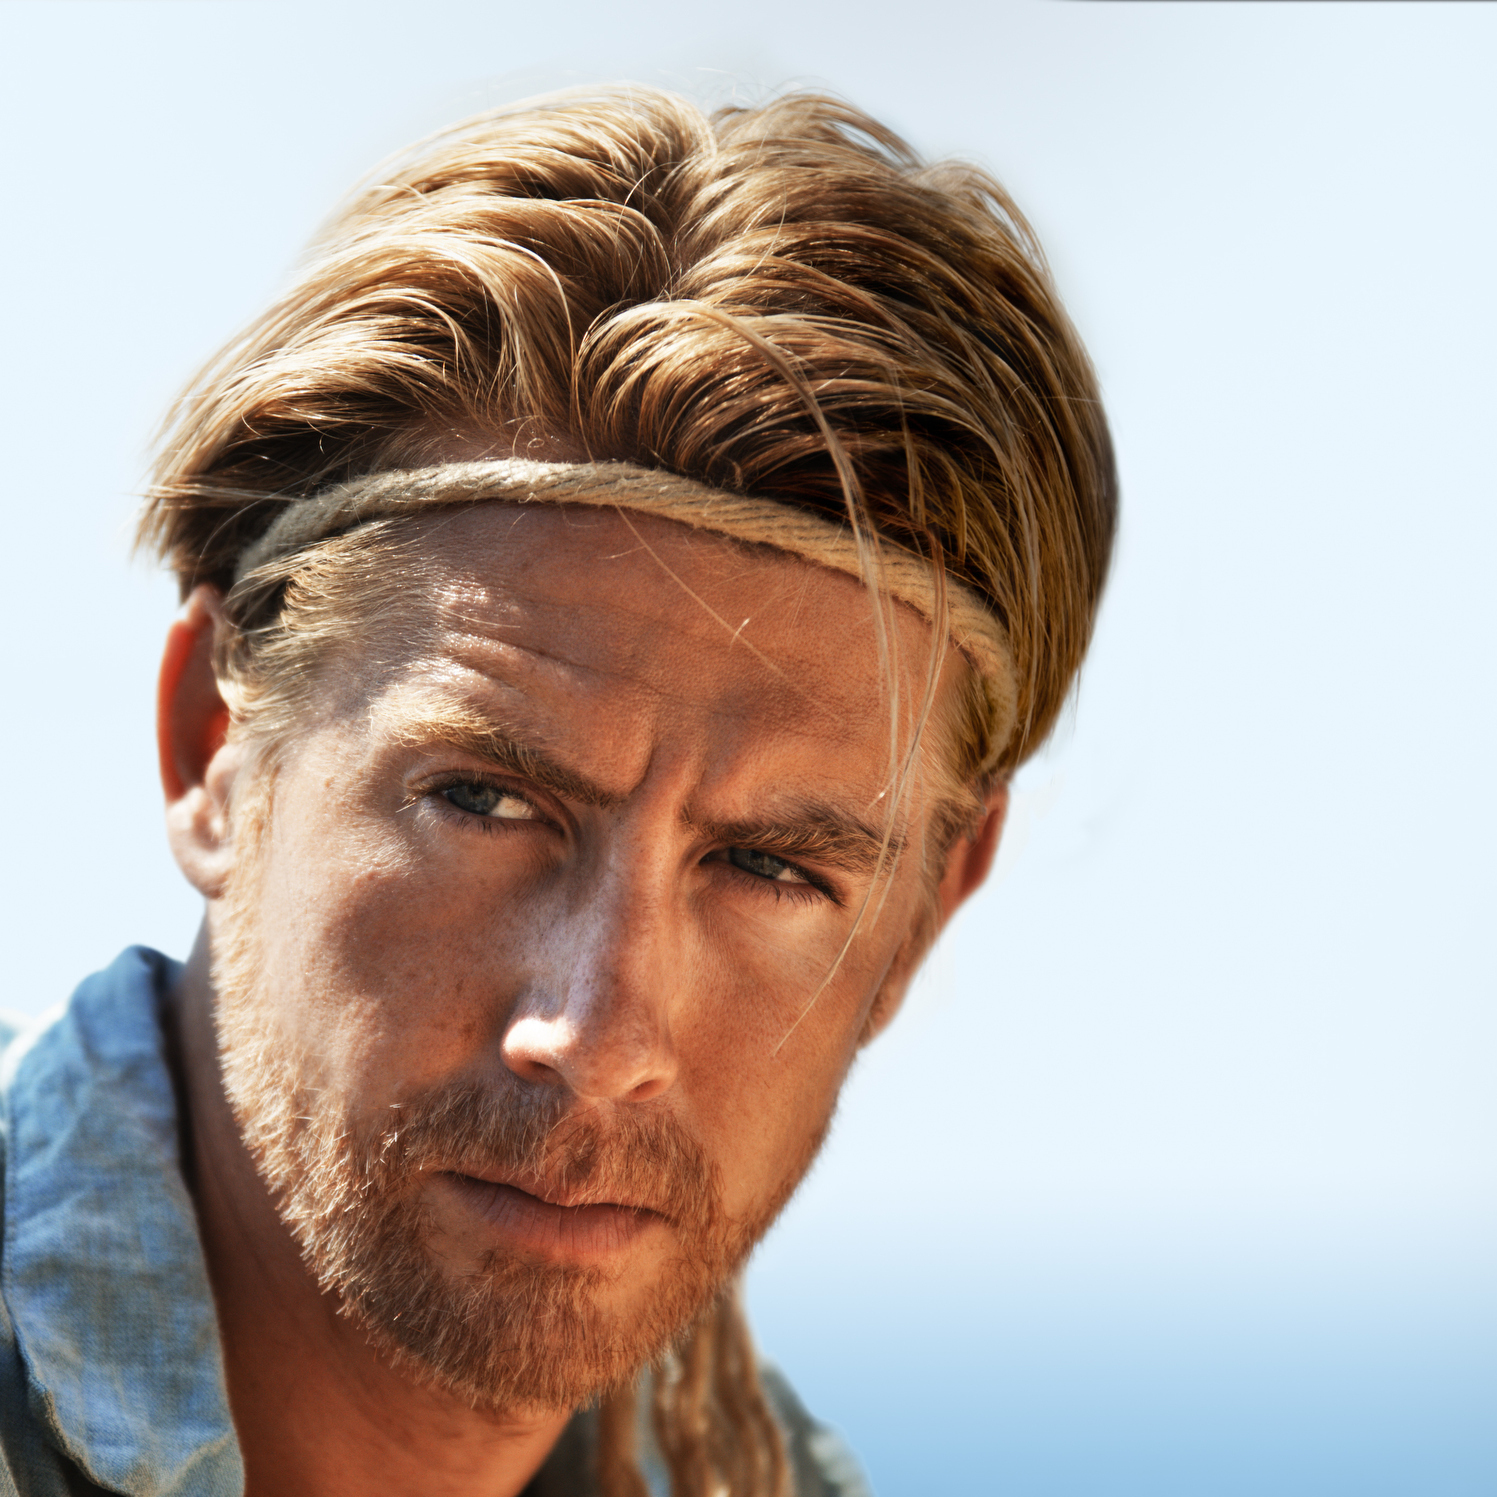 As Heyerdahl, Danish actor Pal Sverre Hagen provides a stern and steady presence throughout Kon-Tiki.